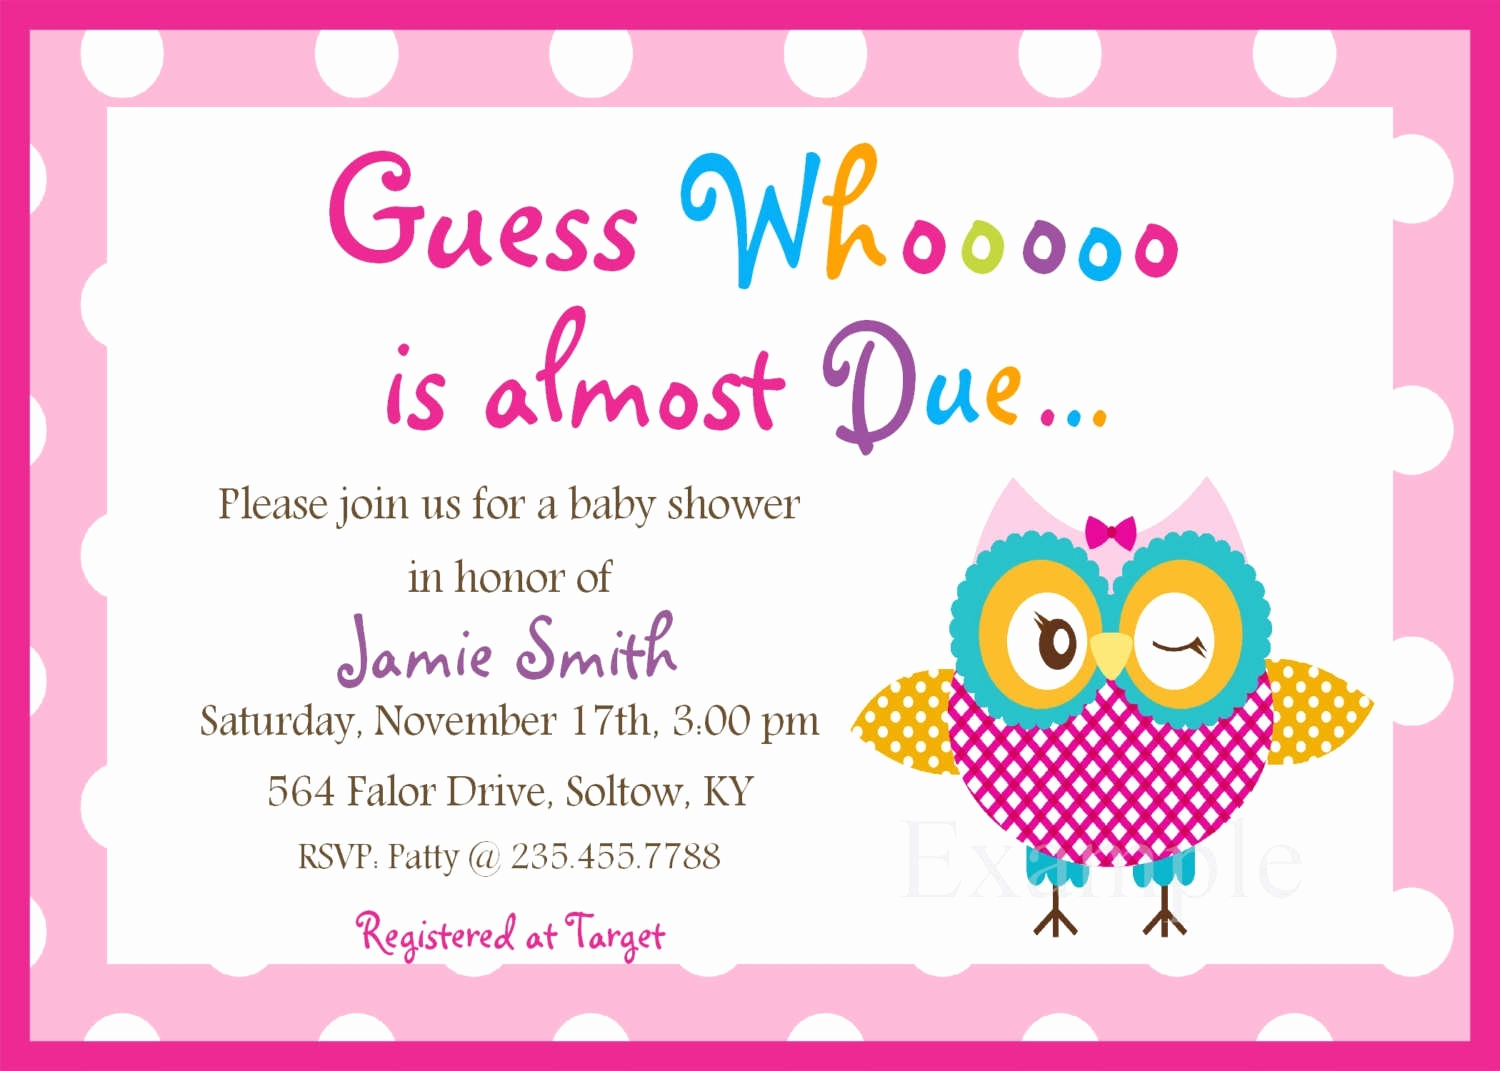 Baby Shower Invitations Templates Editable Beautiful Free Line Baby Shower Invitations Templates Beepmunk